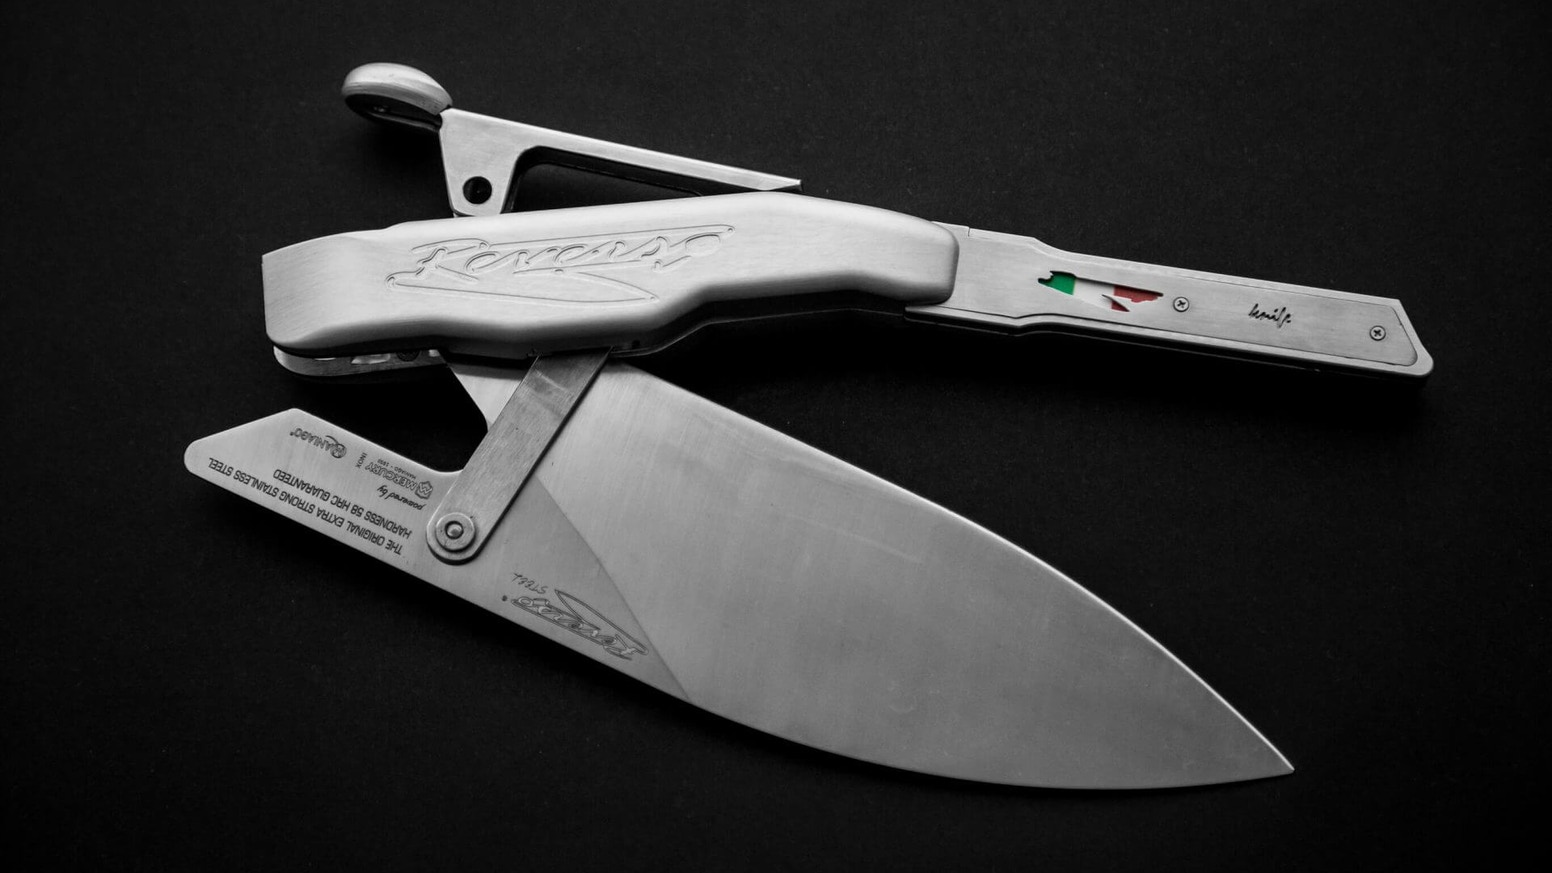 REVERSO®KNIFE 2.0 by Franco Di Nicola is a modular knife for professional chefs. It improves drastically safety and functionality.